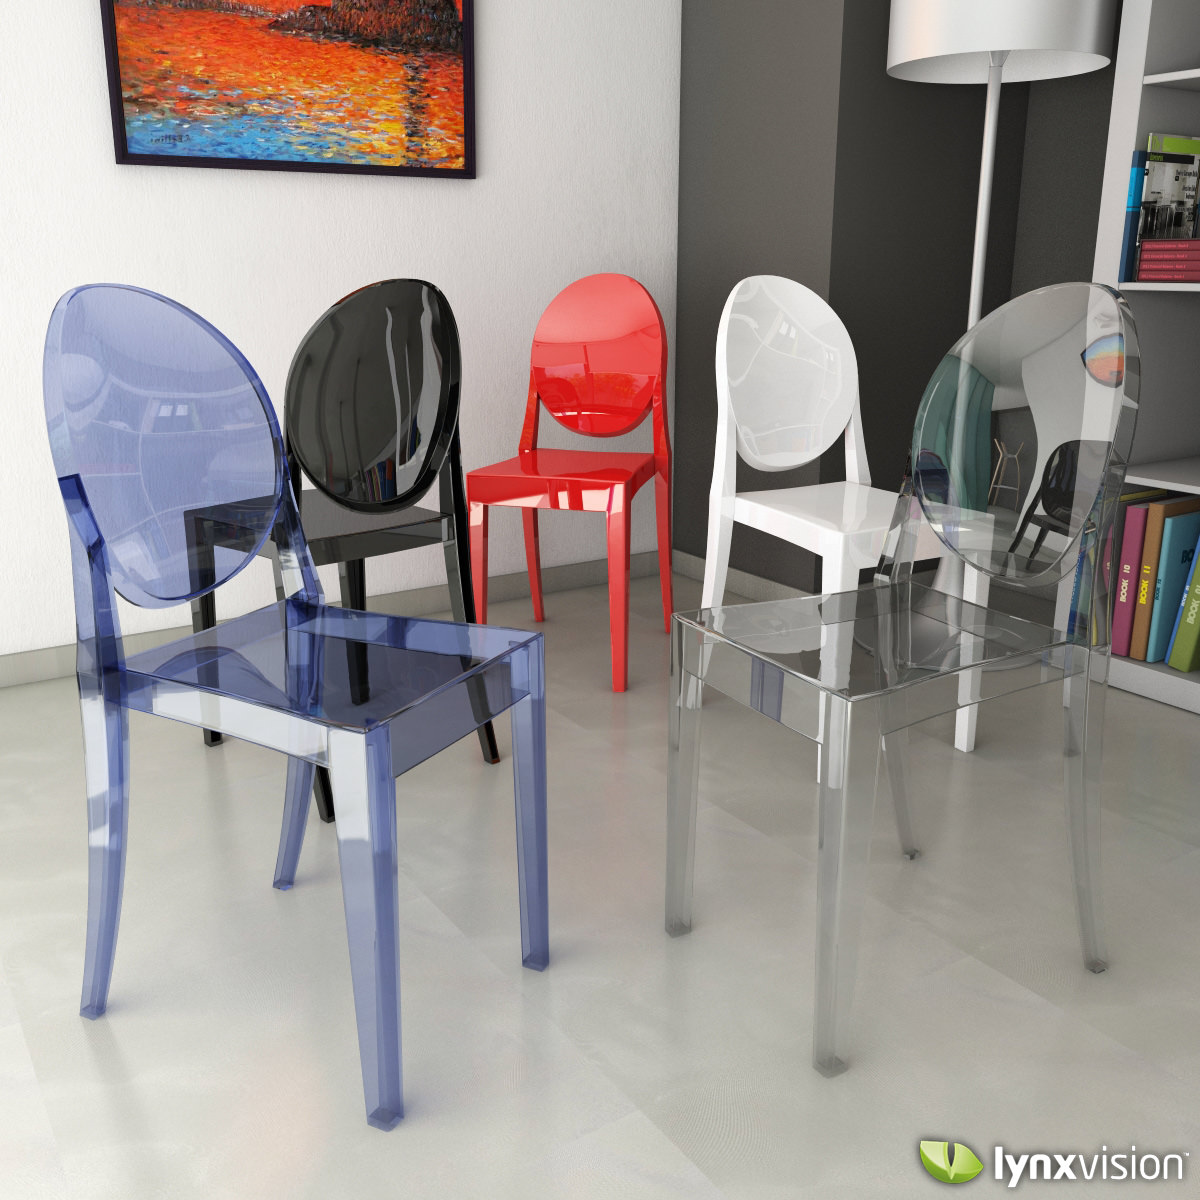 victoria ghost chair ikea rocking nursery by philippe starck 3d model max obj